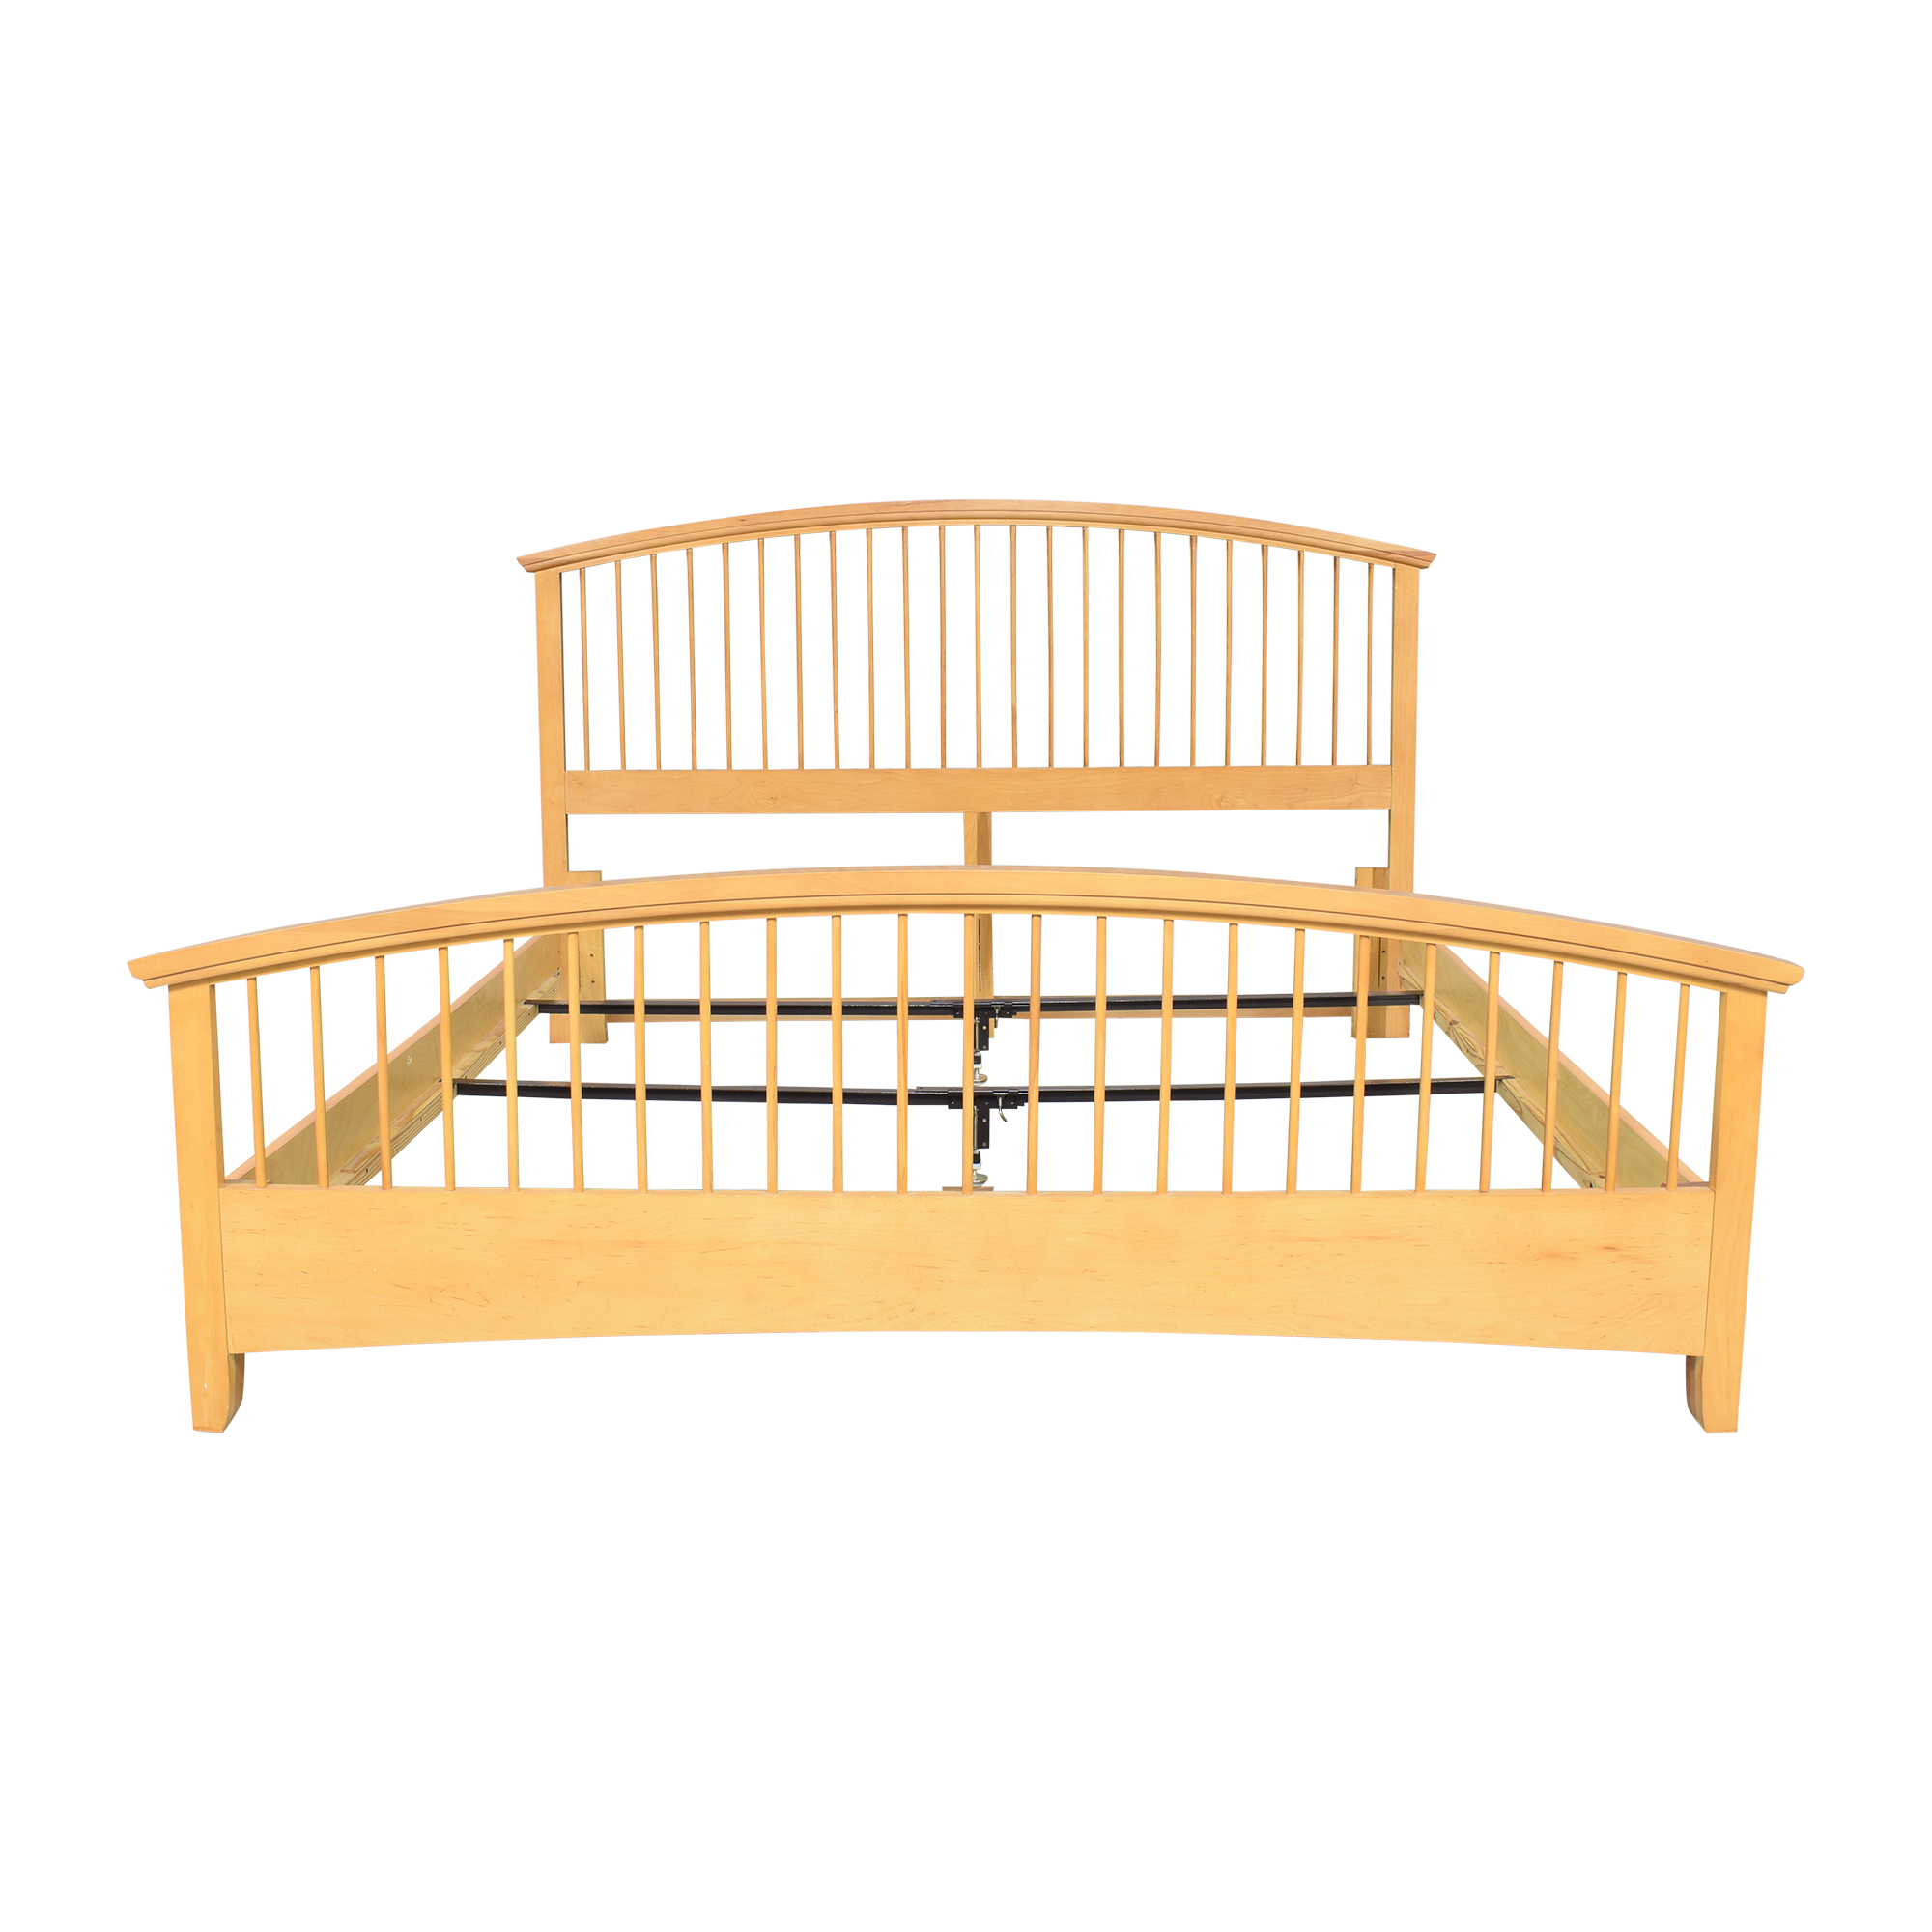 Vaughan-Bassett Vaughan-Bassett Arched Spindle King Bed nj